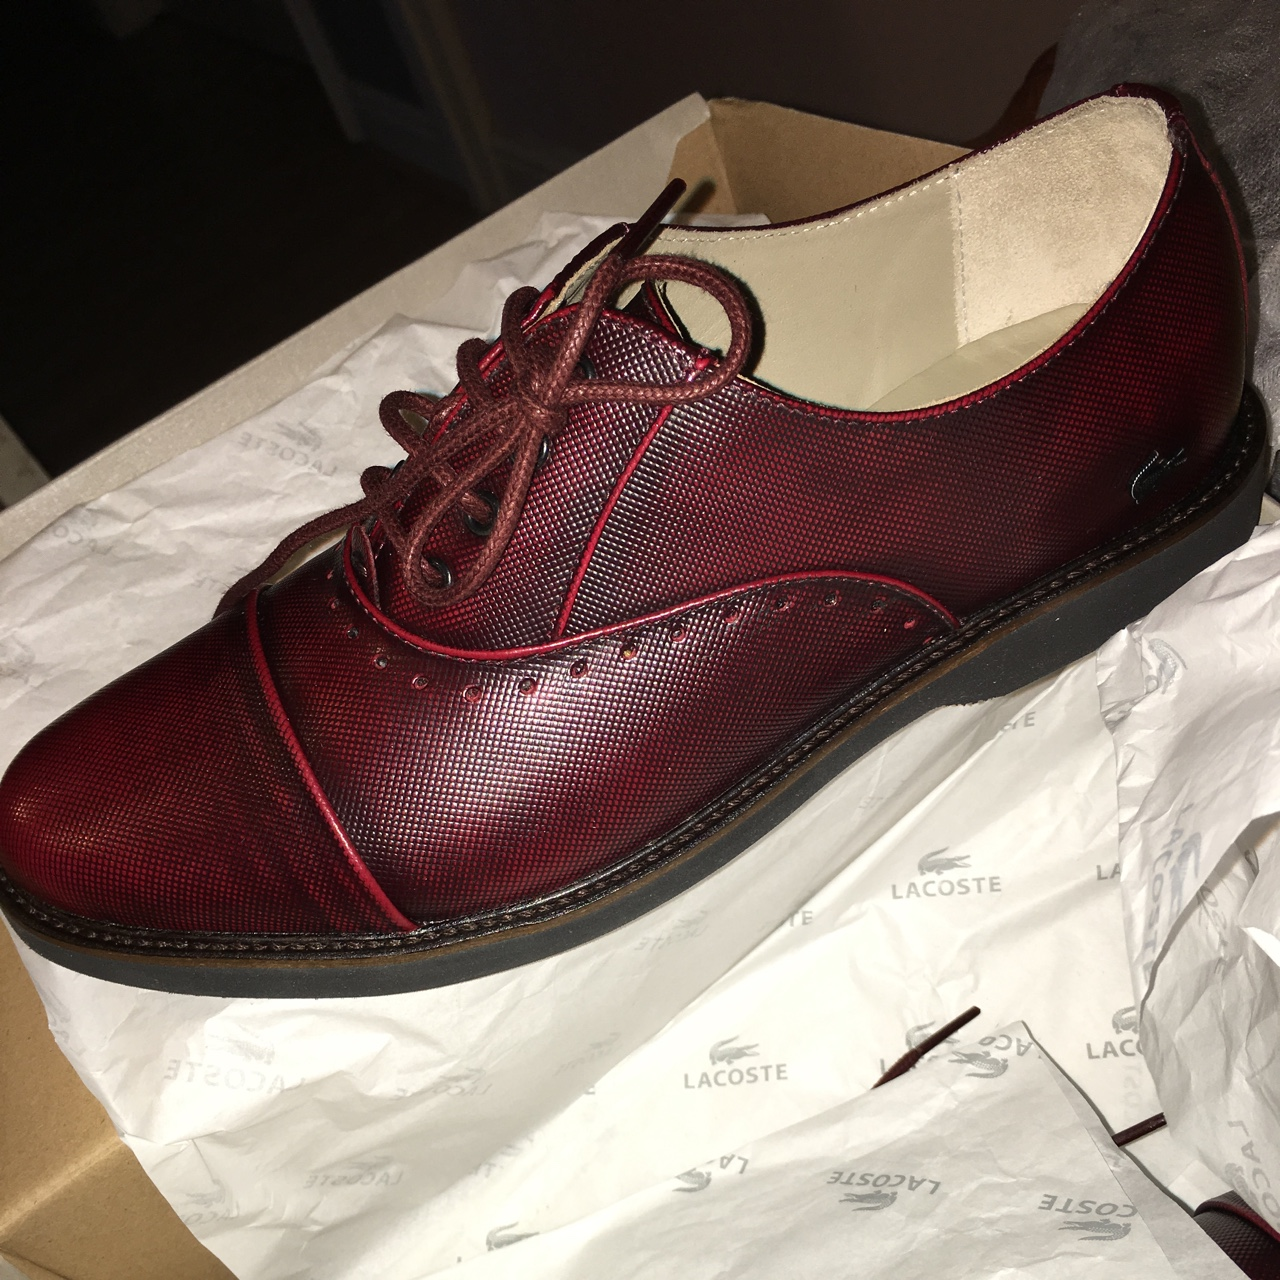 burgundy Lacoste brogues